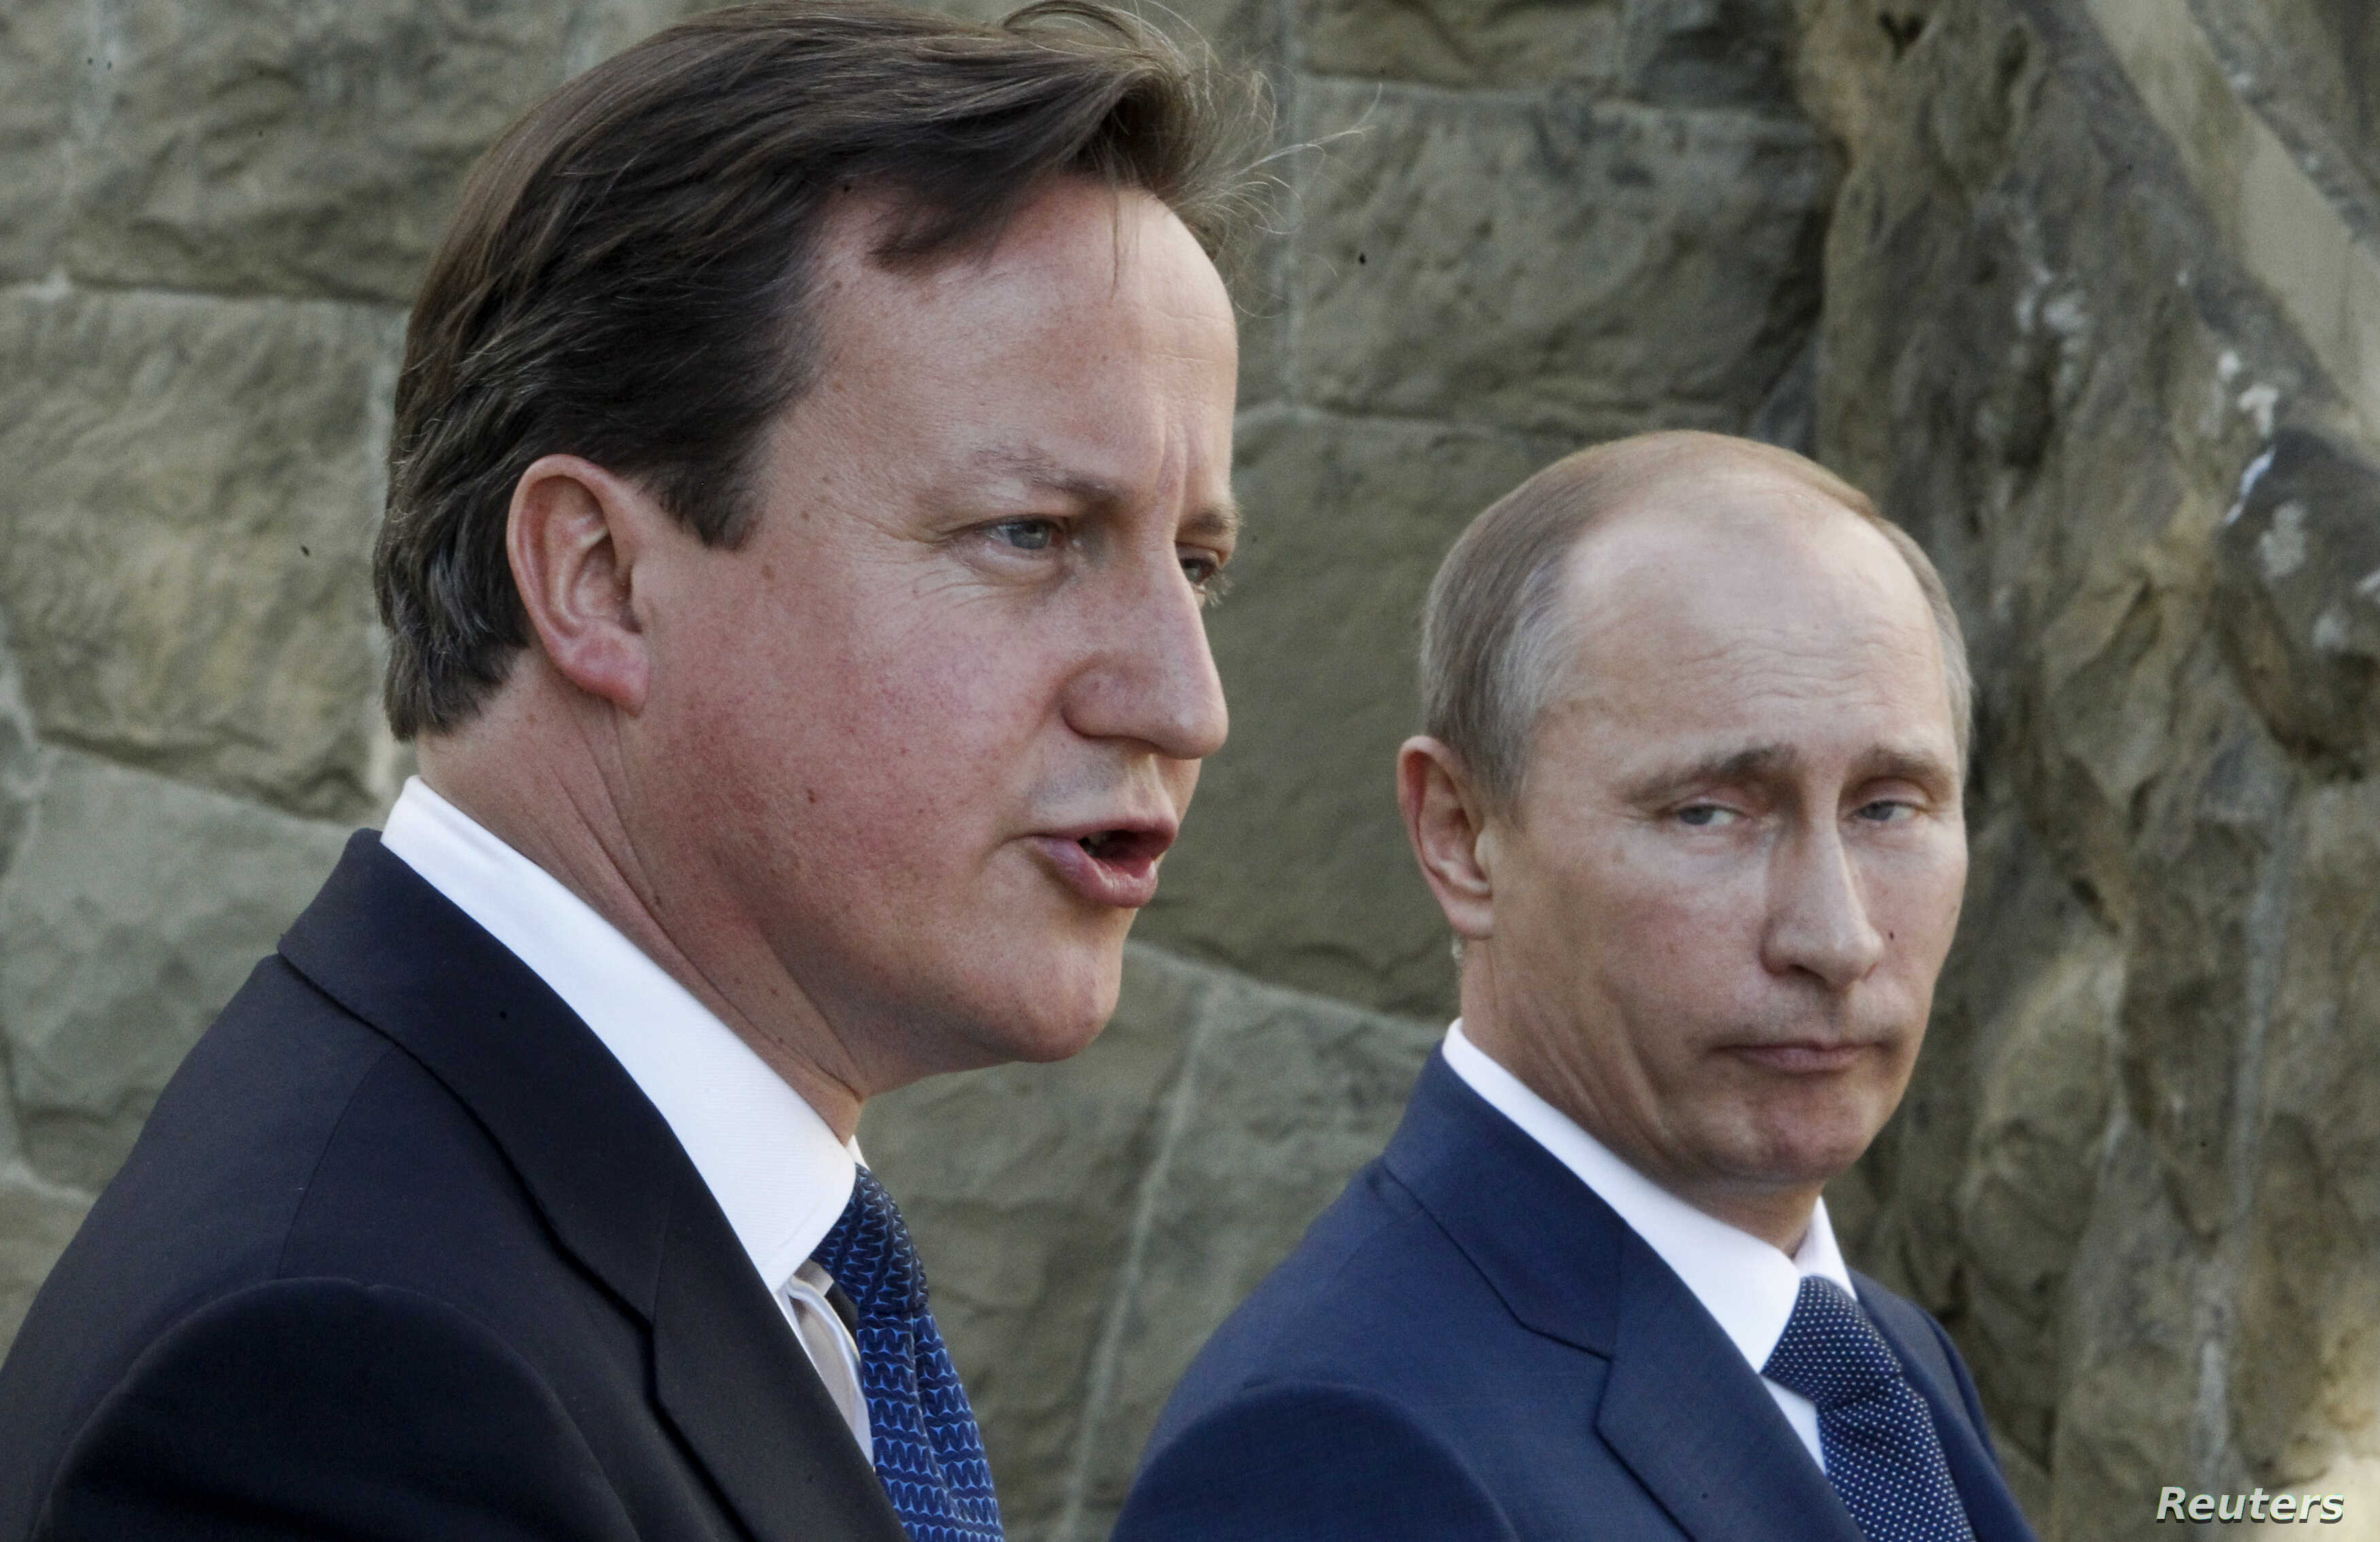 Britain's Prime Minister David Cameron and Russian President Vladimir Putin (R) speak to media after their meeting at the Bocharov Ruchei state residence in Sochi May 10, 2013.